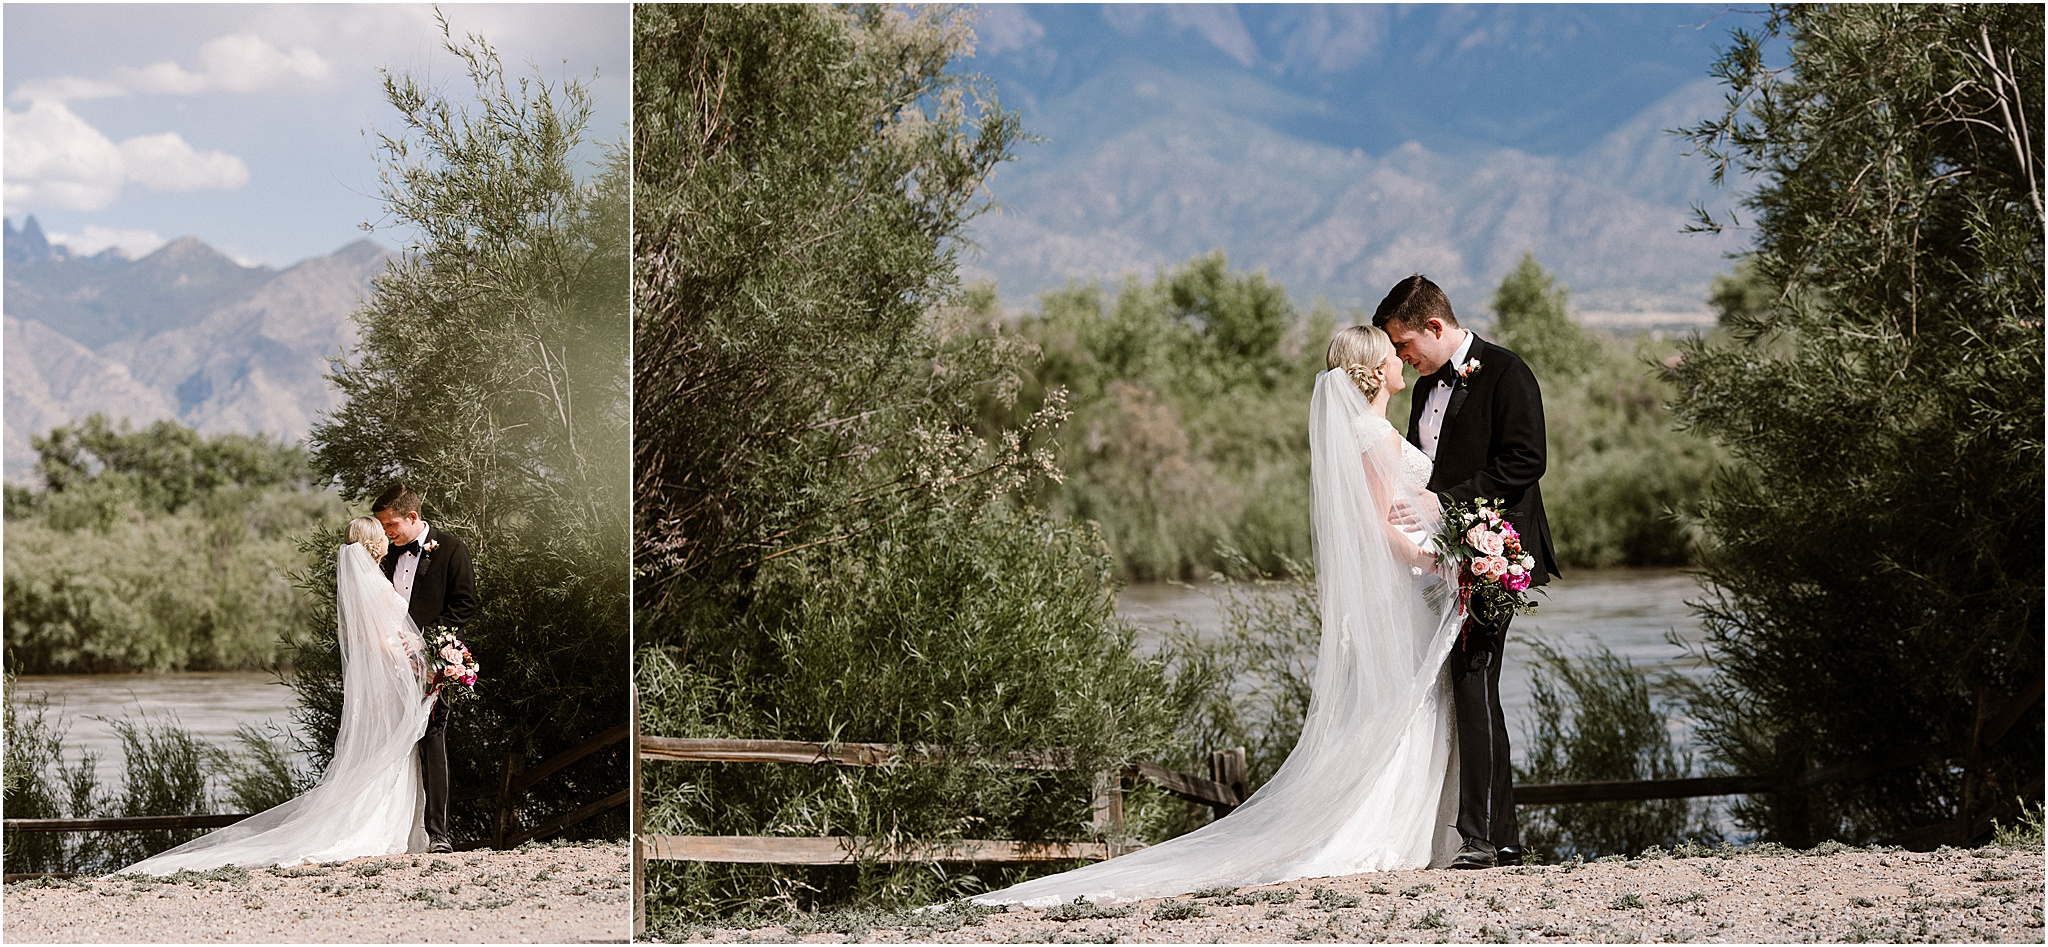 JENNA_JEROME_BLUE ROSE PHOTOGRAPHY_ABQ WEDDING_28